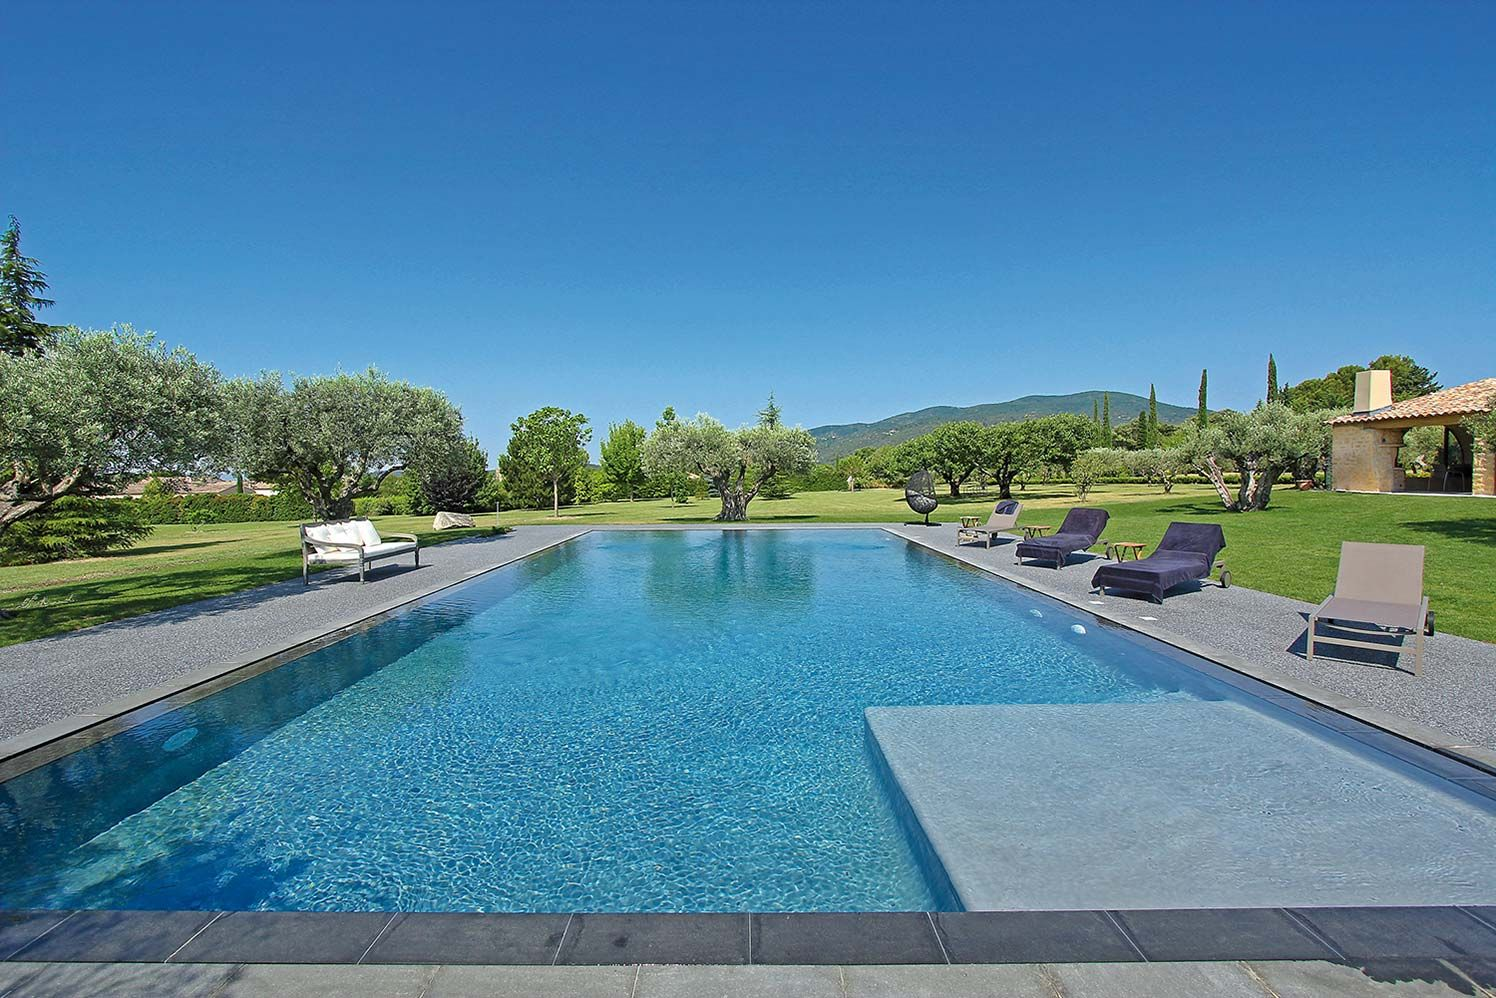 Piscine Contemporaine Of La Piscine Petite Note Contemporaine Provence And